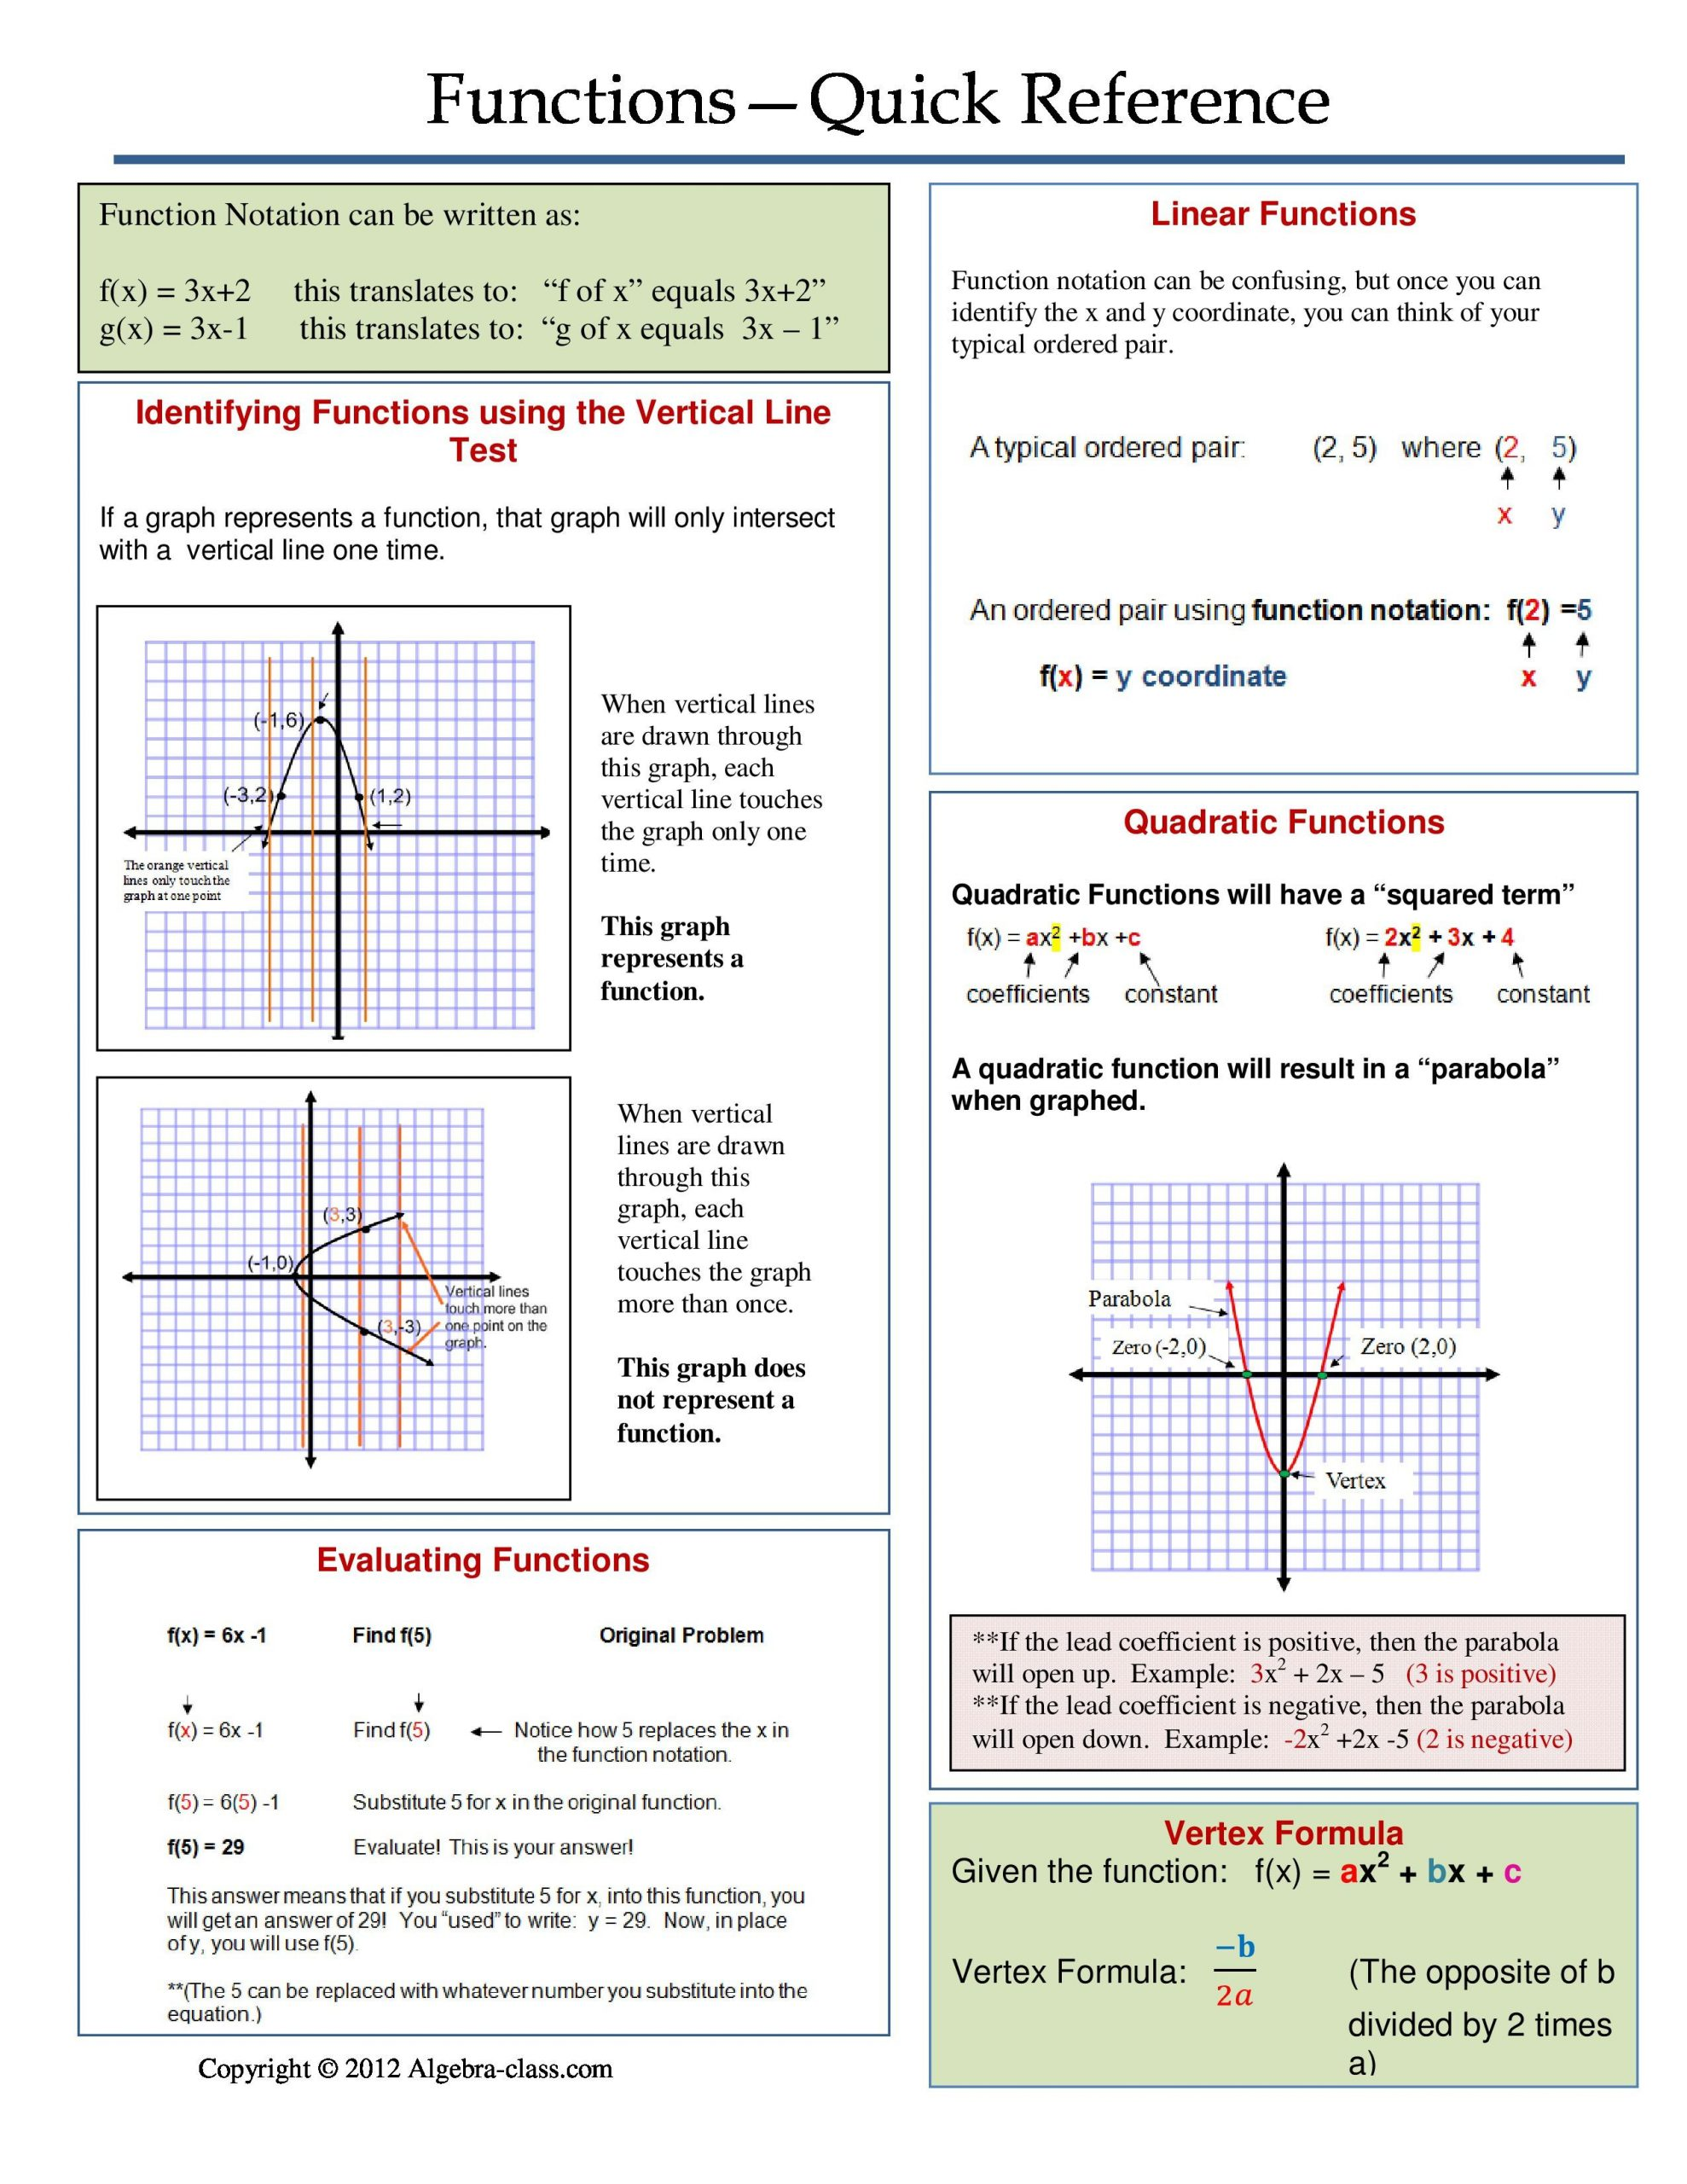 Functions and Relations Worksheet Pin by Candy Favorite On Algebra Cheat Sheets